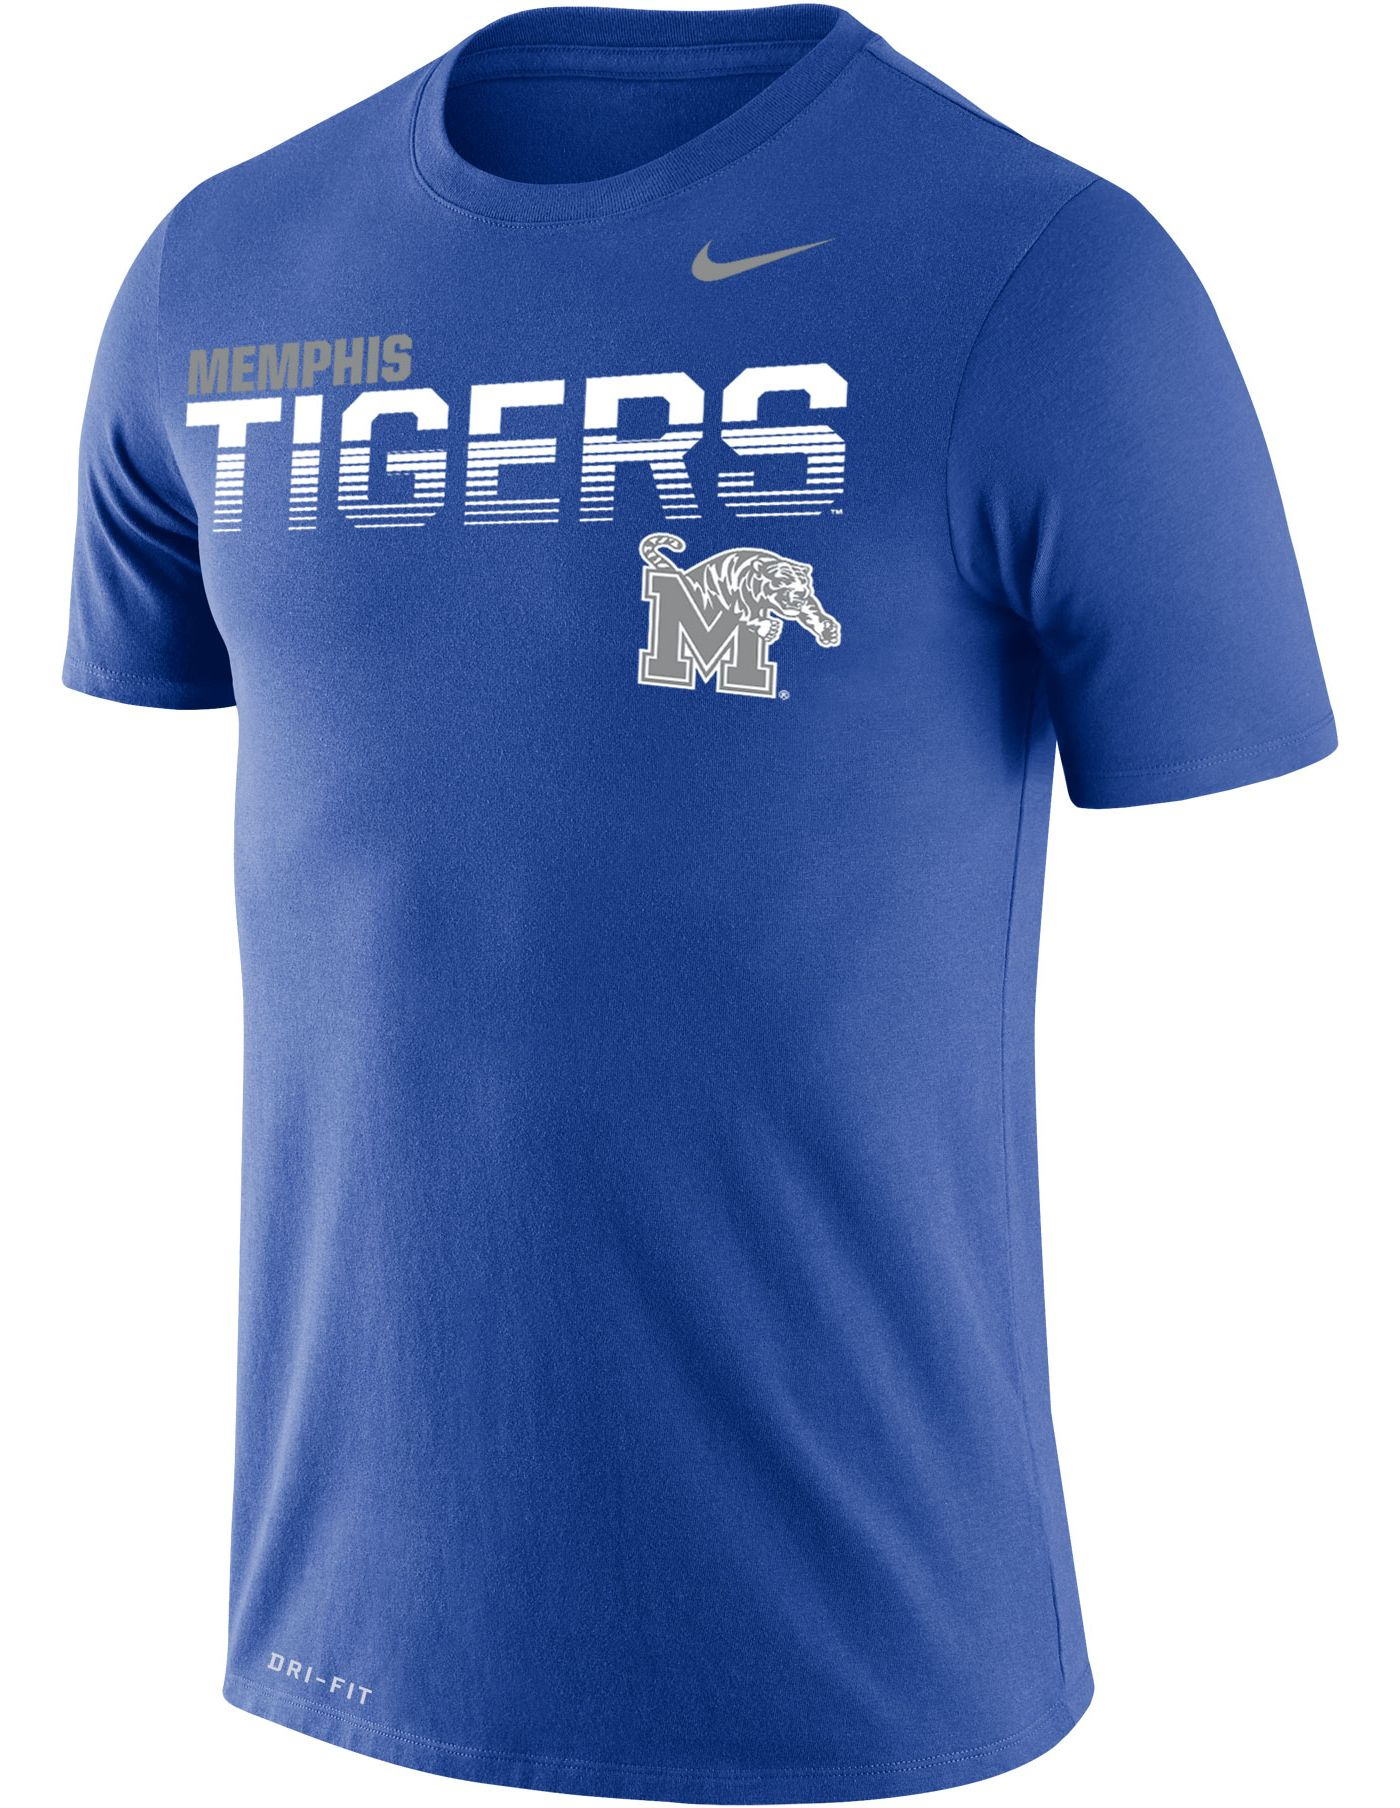 Nike Men's Memphis Tigers Blue Legend Football Sideline T-Shirt